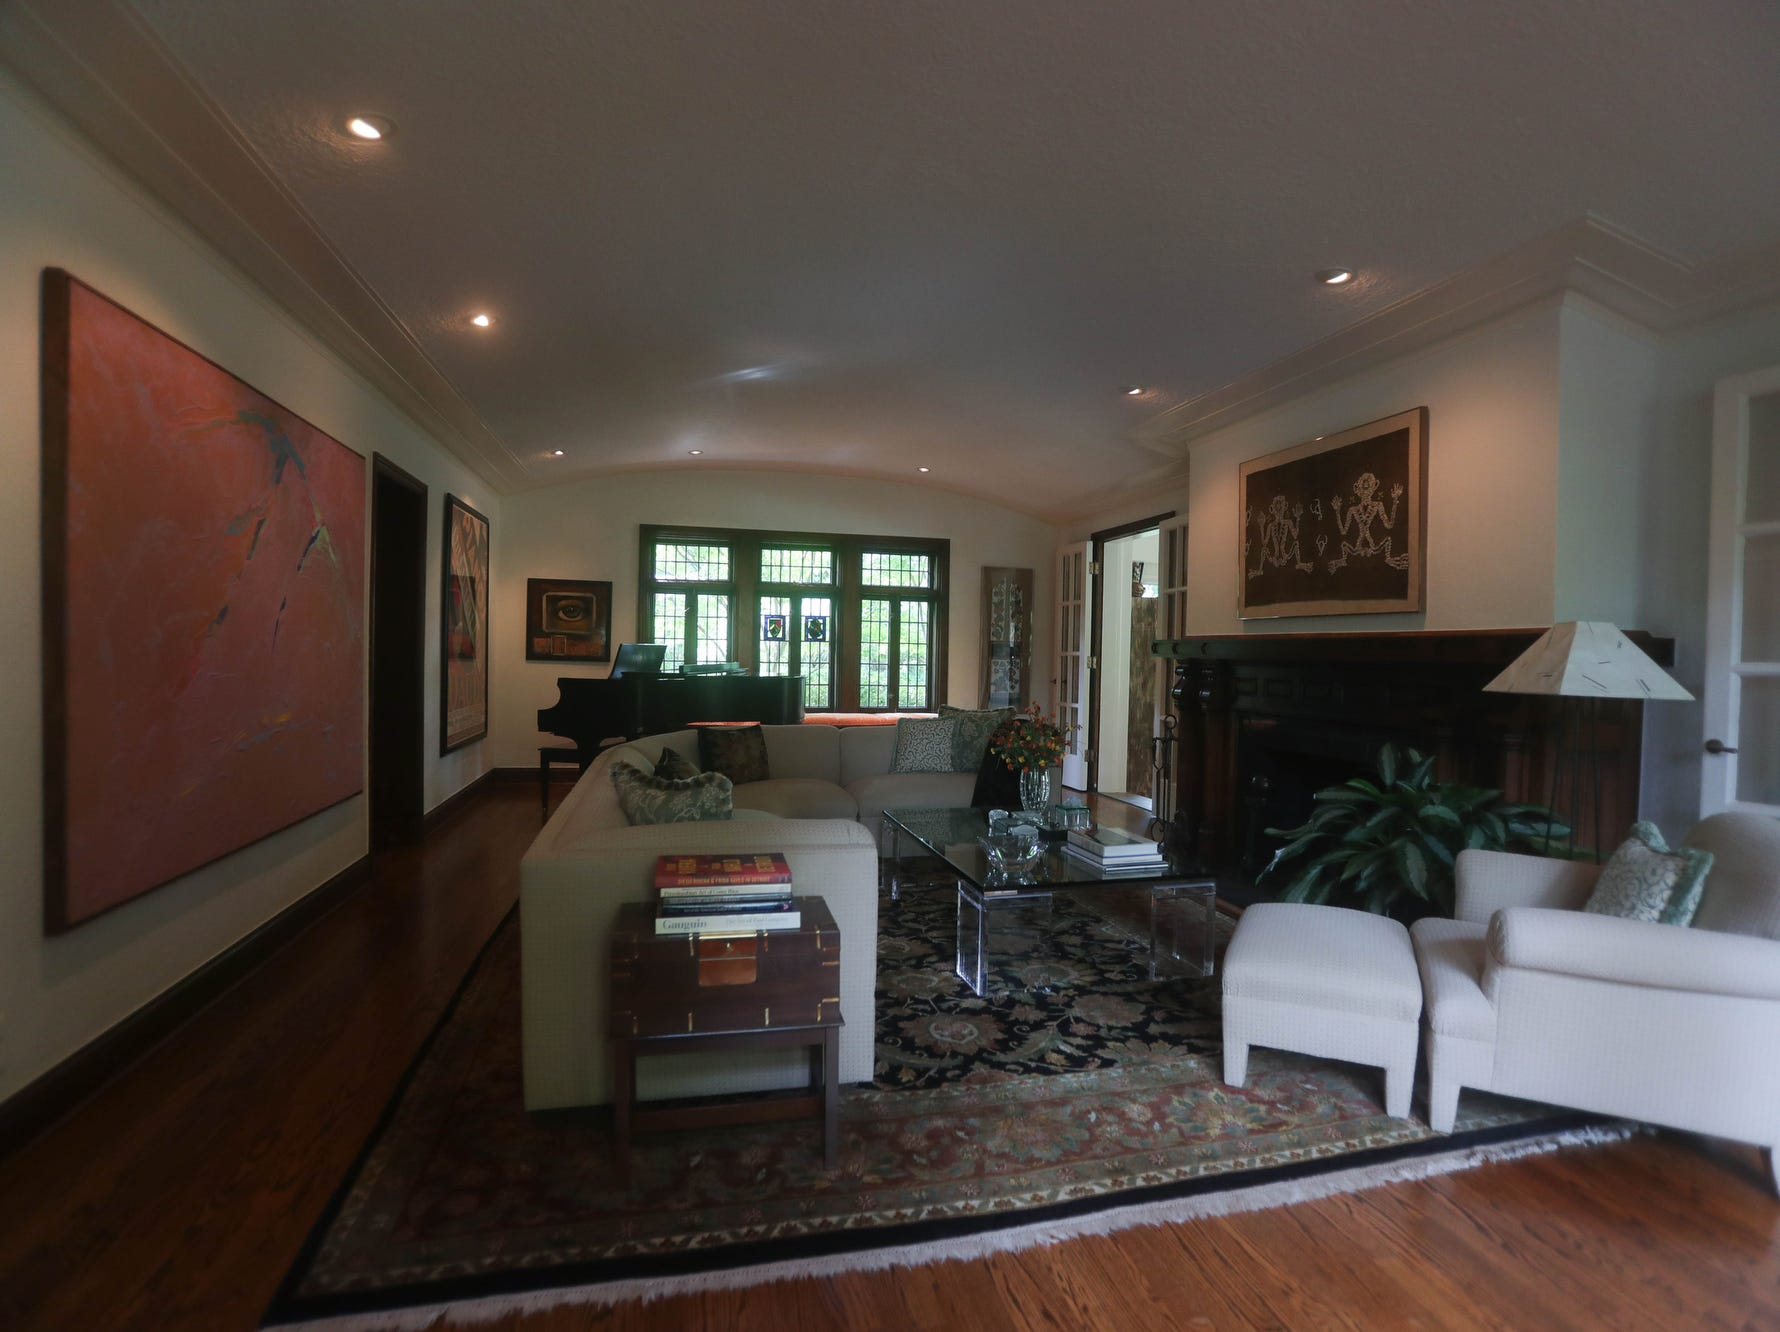 The long, formal living room has a wide, carved wood fireplace, a barrel ceiling and  leaded glass windows. The French doors at right lead to the dining room.